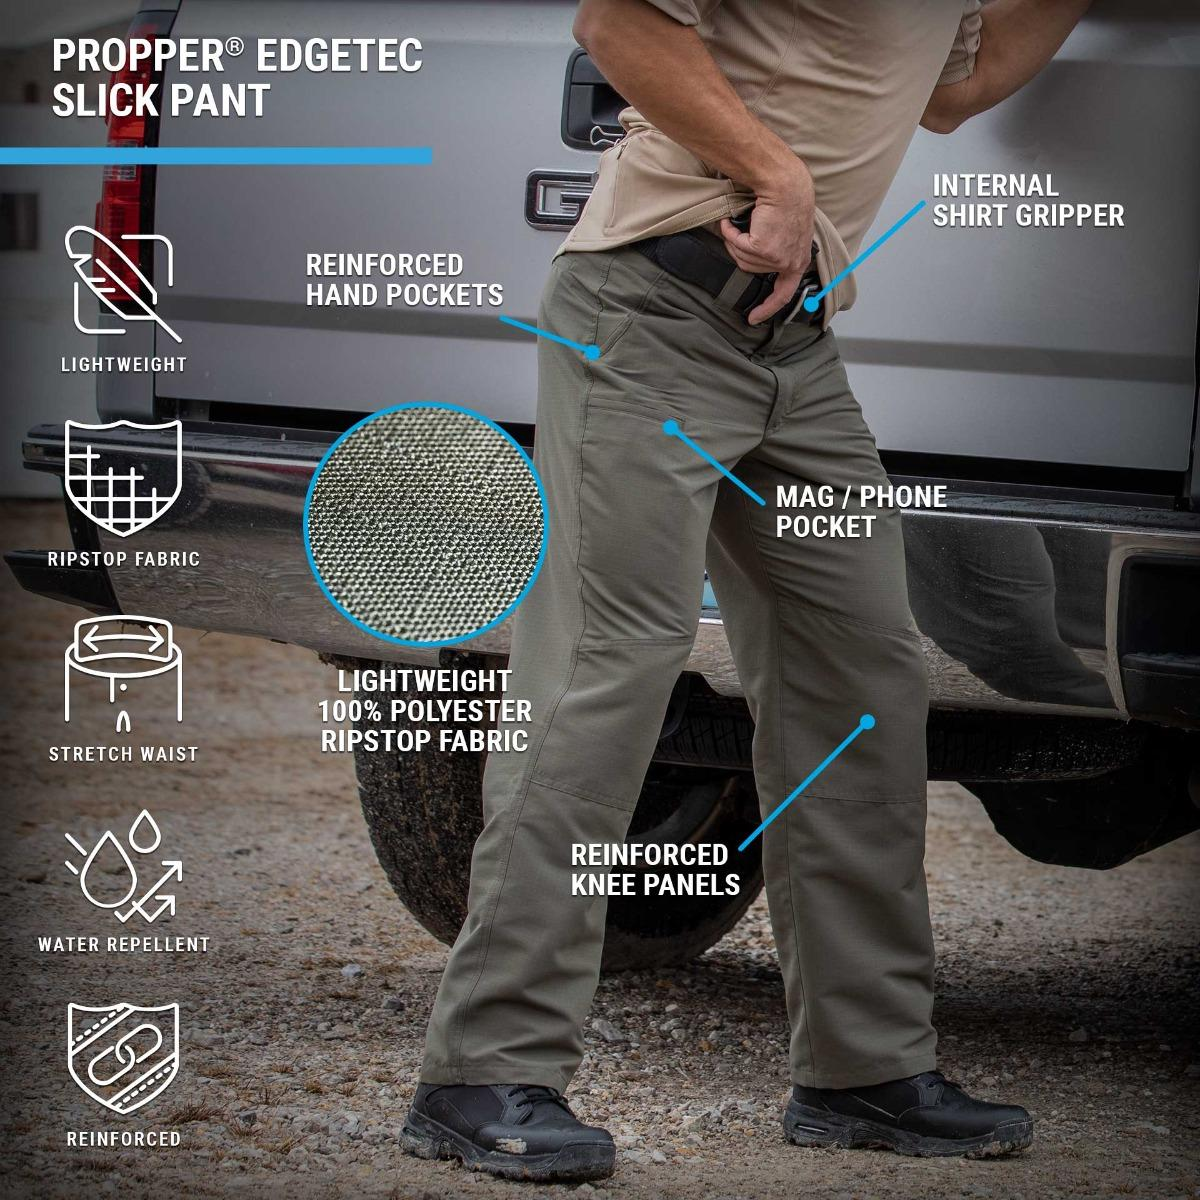 EdgeTec Slick Pants feature lightweight water-resistant ripstop fabric with reinforced knees and a cell phone pocket in a covert design.